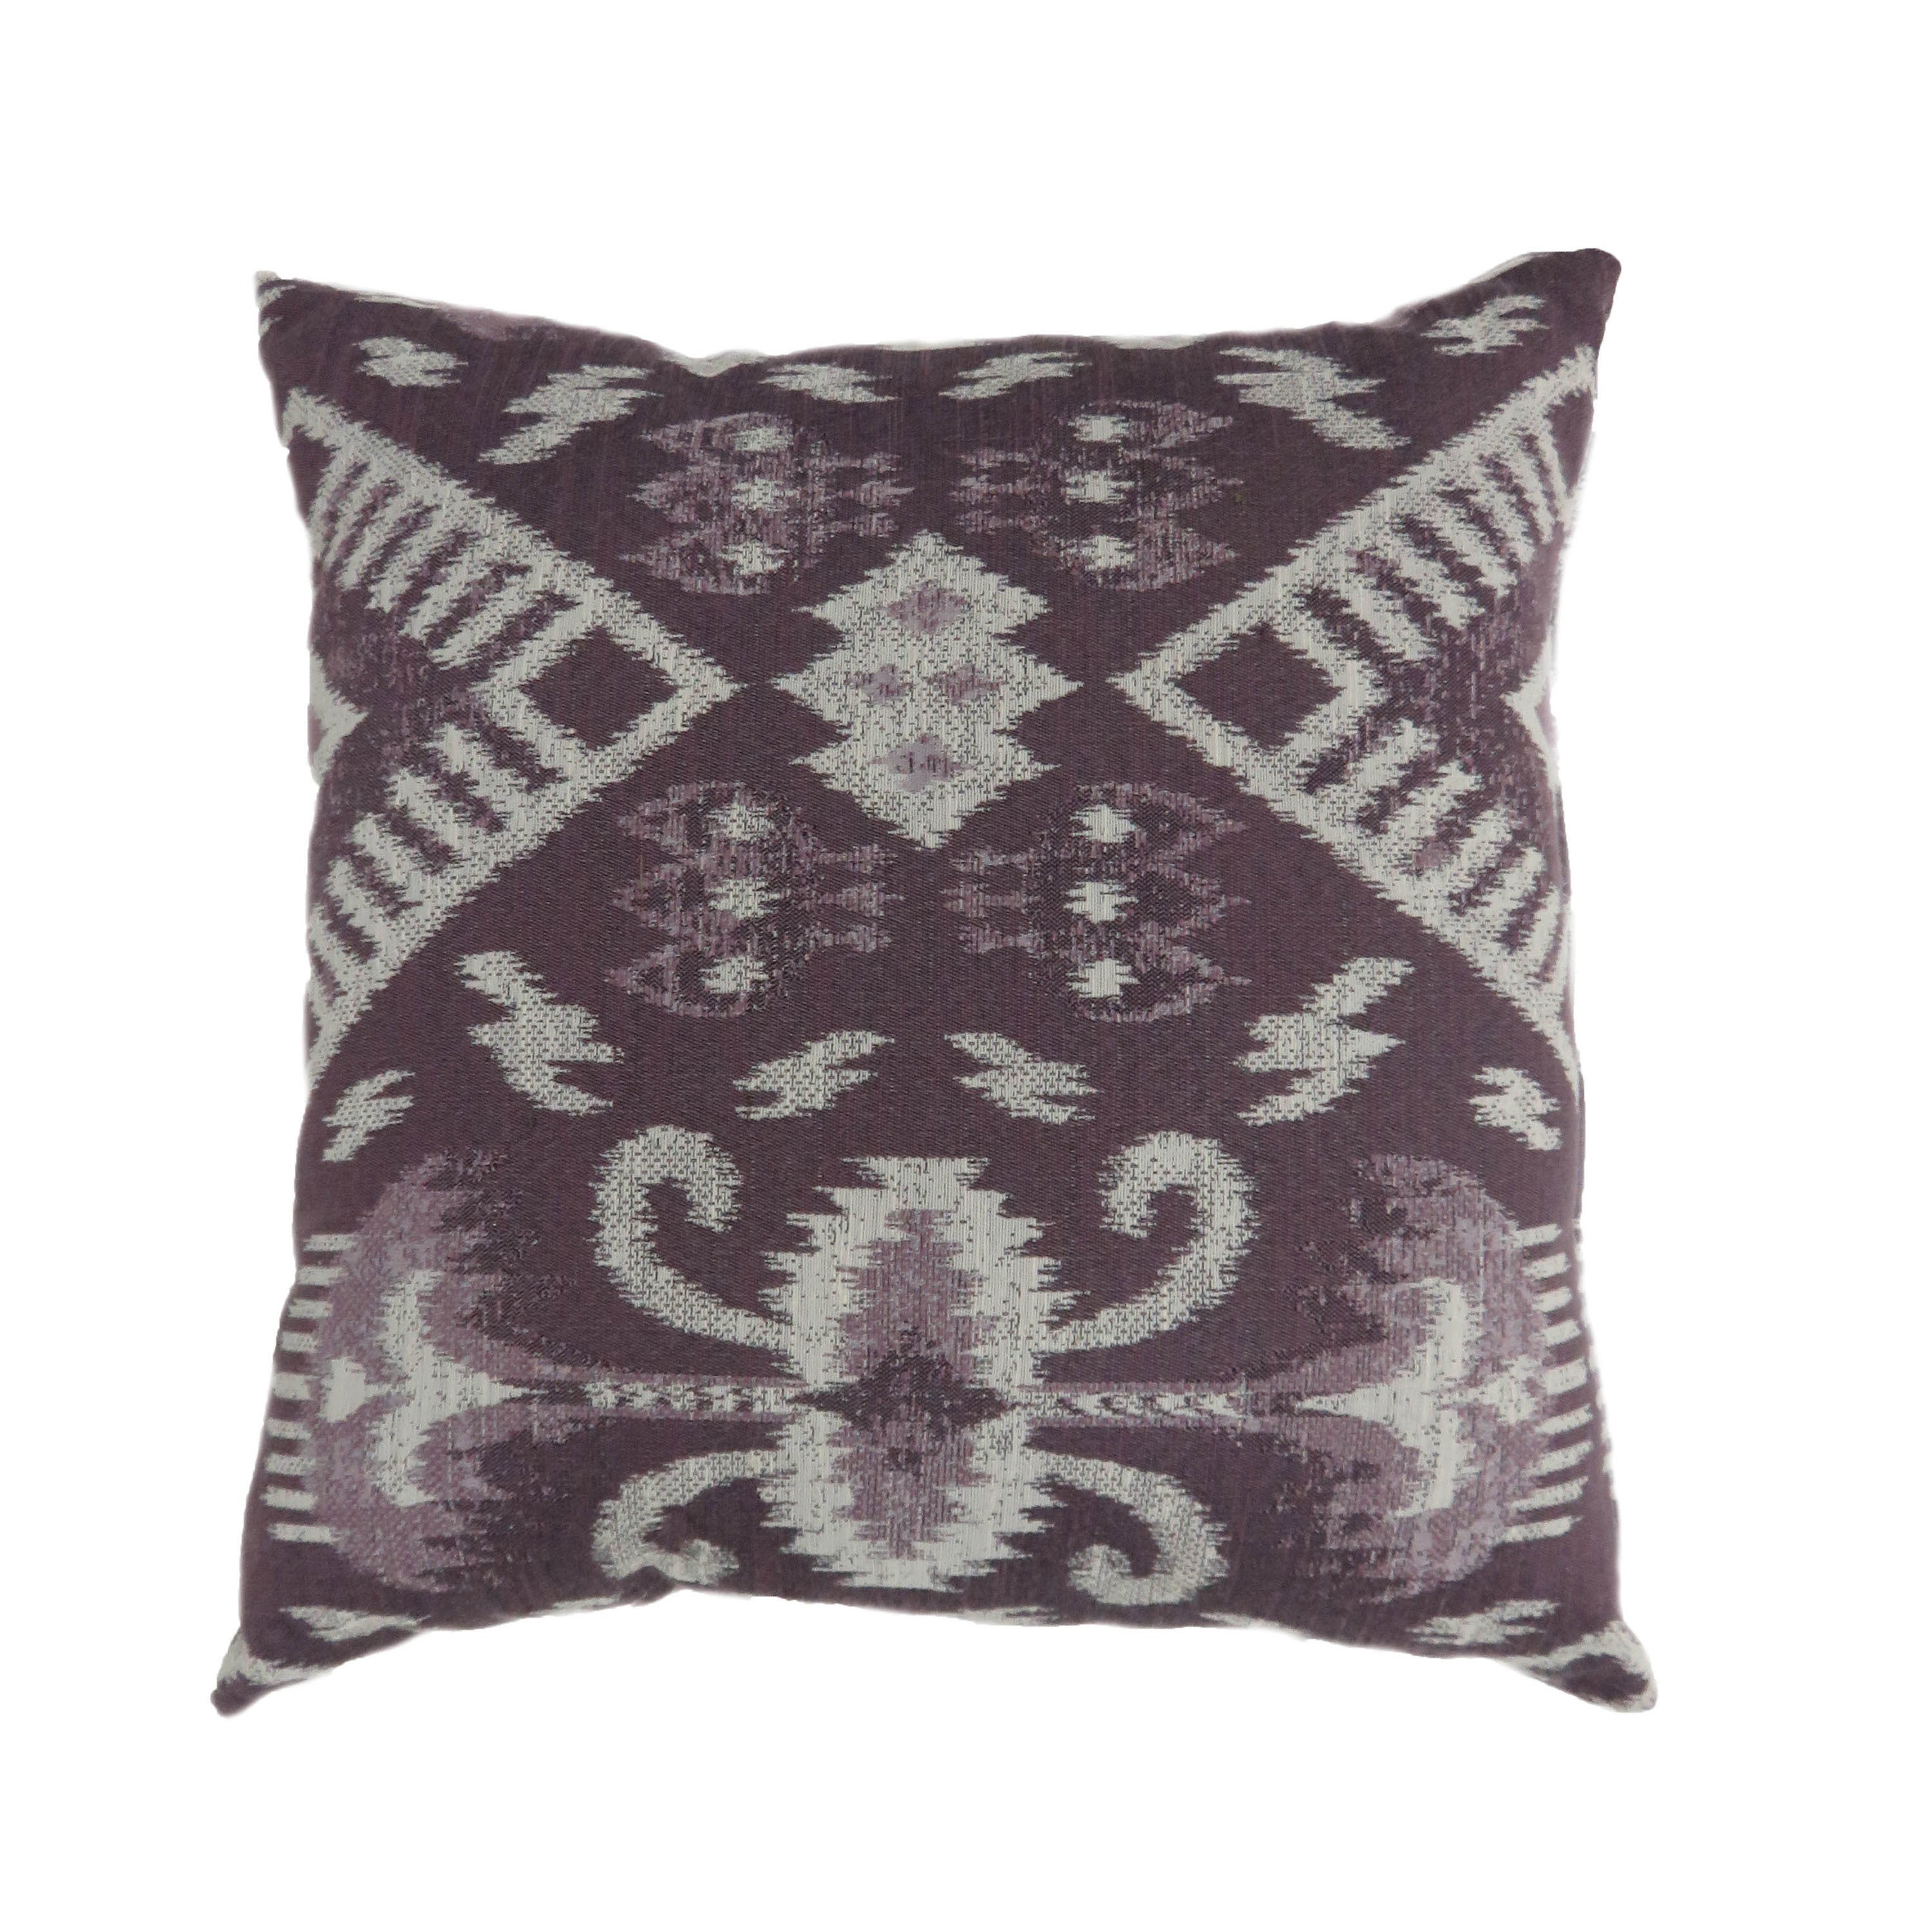 Shop furniture of america mojave southwestern throw pillows set of 2 on sale free shipping today overstock com 20295462